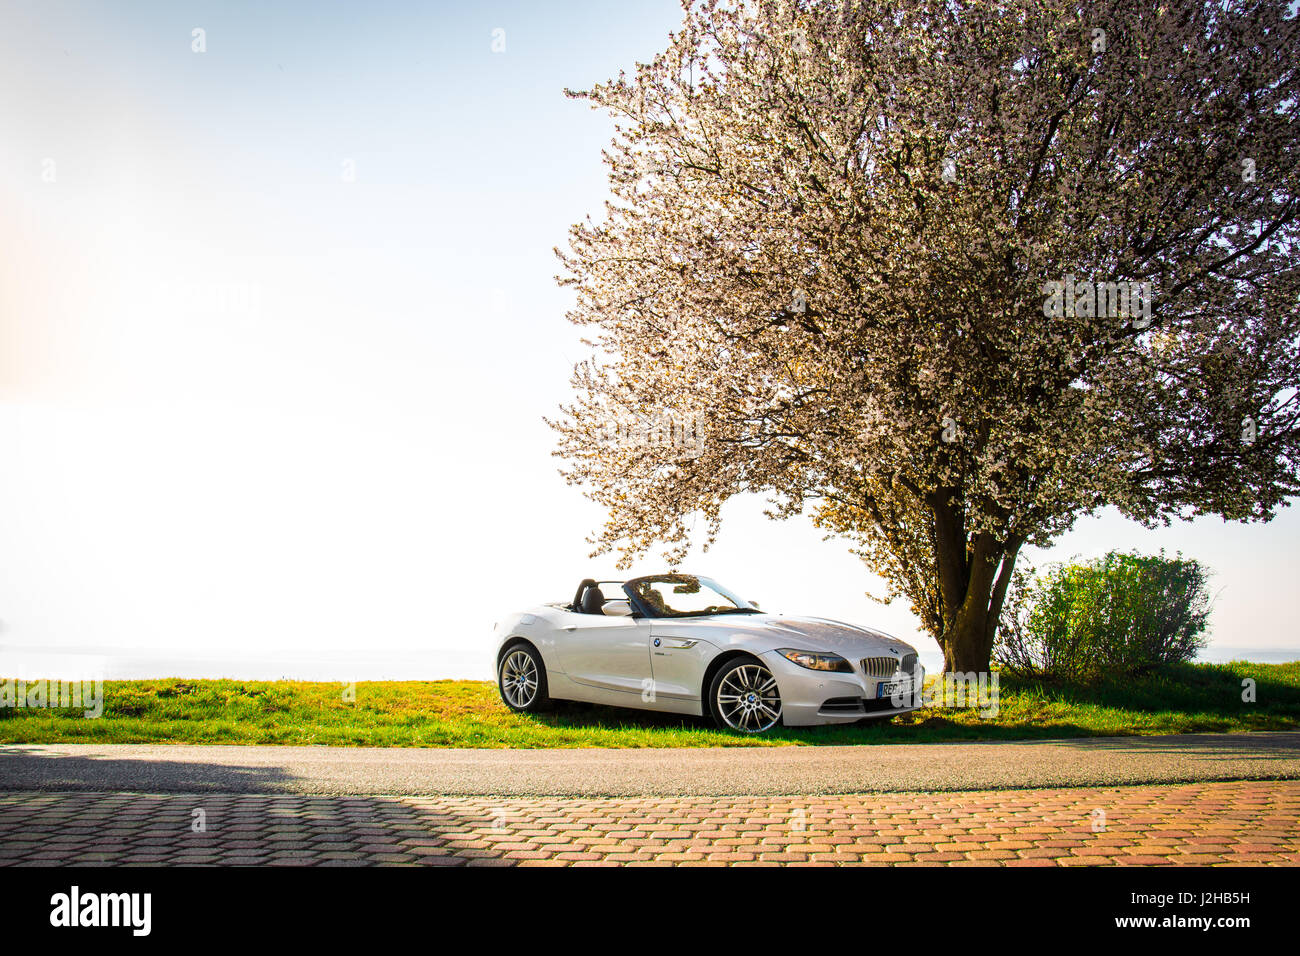 Bmw Z4 Wallpaper High Resolution Stock Photography And Images Alamy